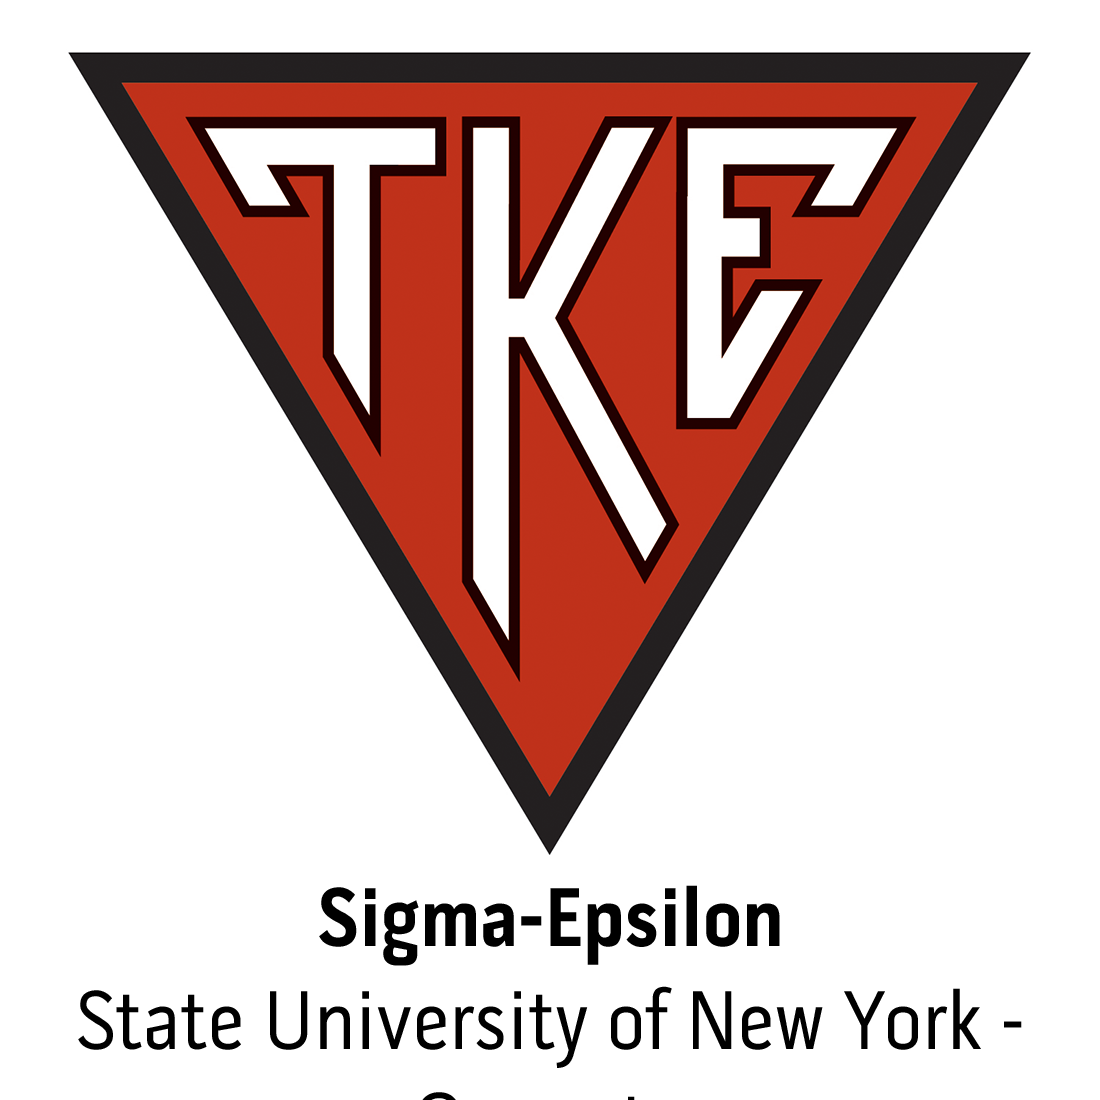 Sigma-Epsilon Colony L at State University of New York - Oneonta